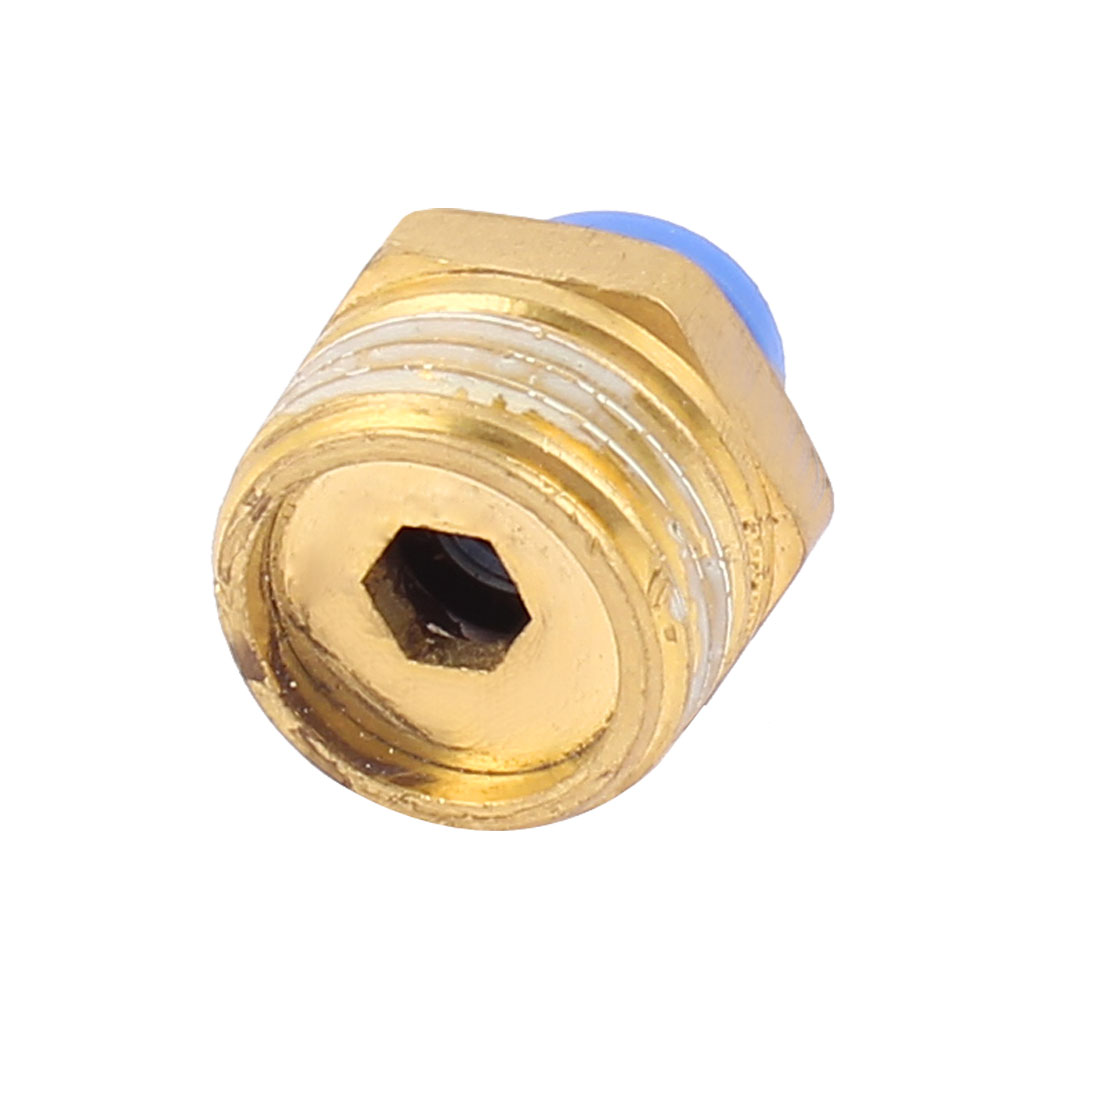 1/2PT x 8mm Straight Pipe Hose Connector Air Pneumatic Quick Coupler Coupling Fitting Joint